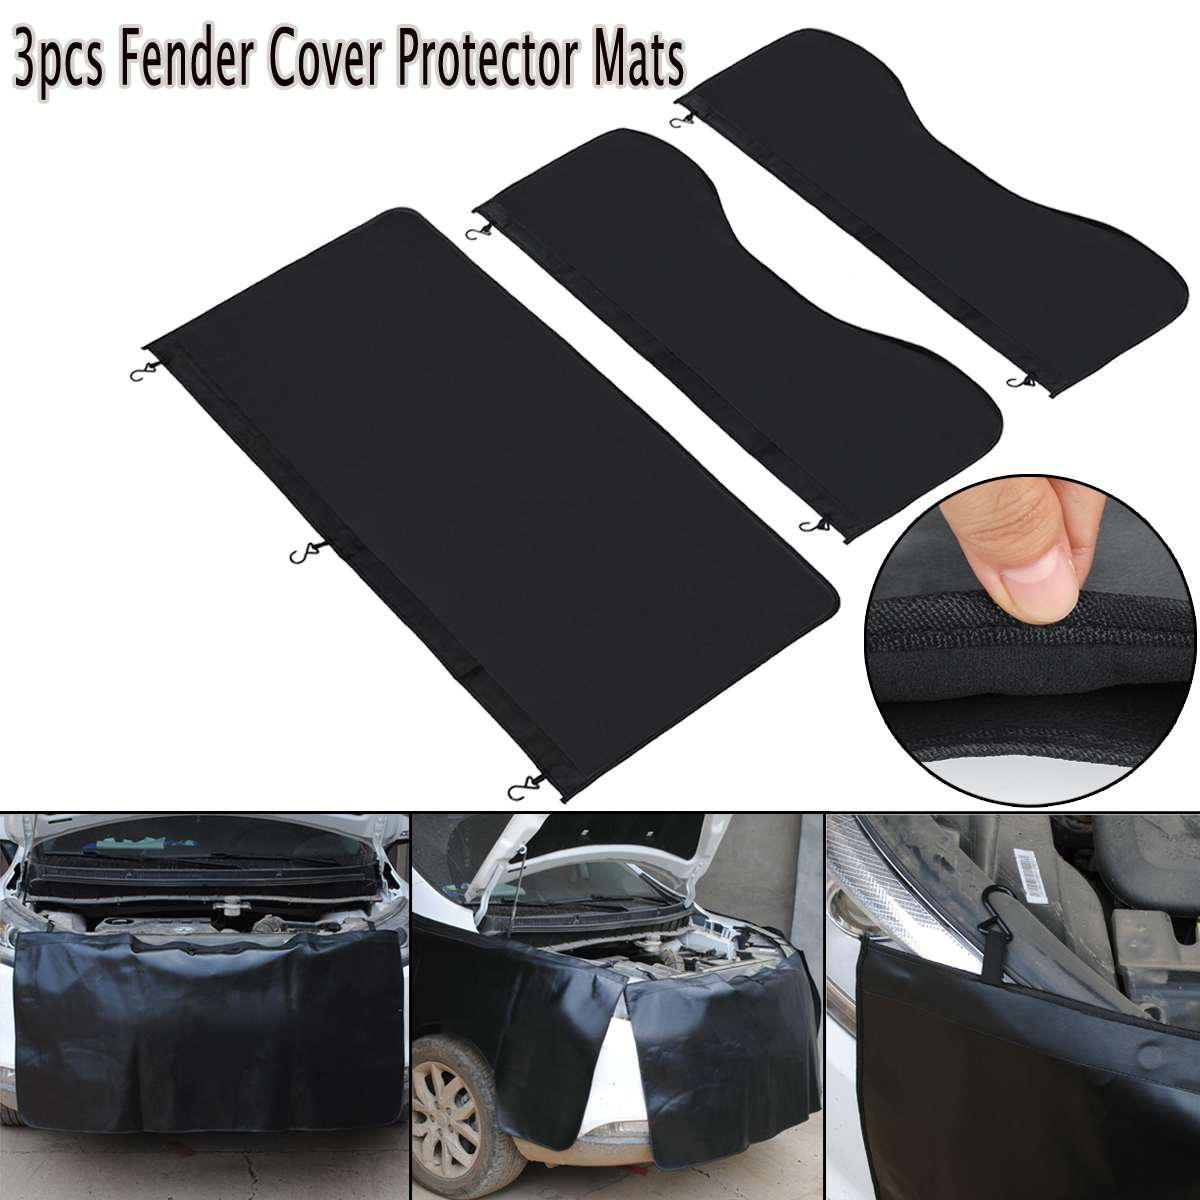 Protector Fender-Cover Work-Mat Mechanic Auto-Repairing-Pad Magnetic Universal Car  title=